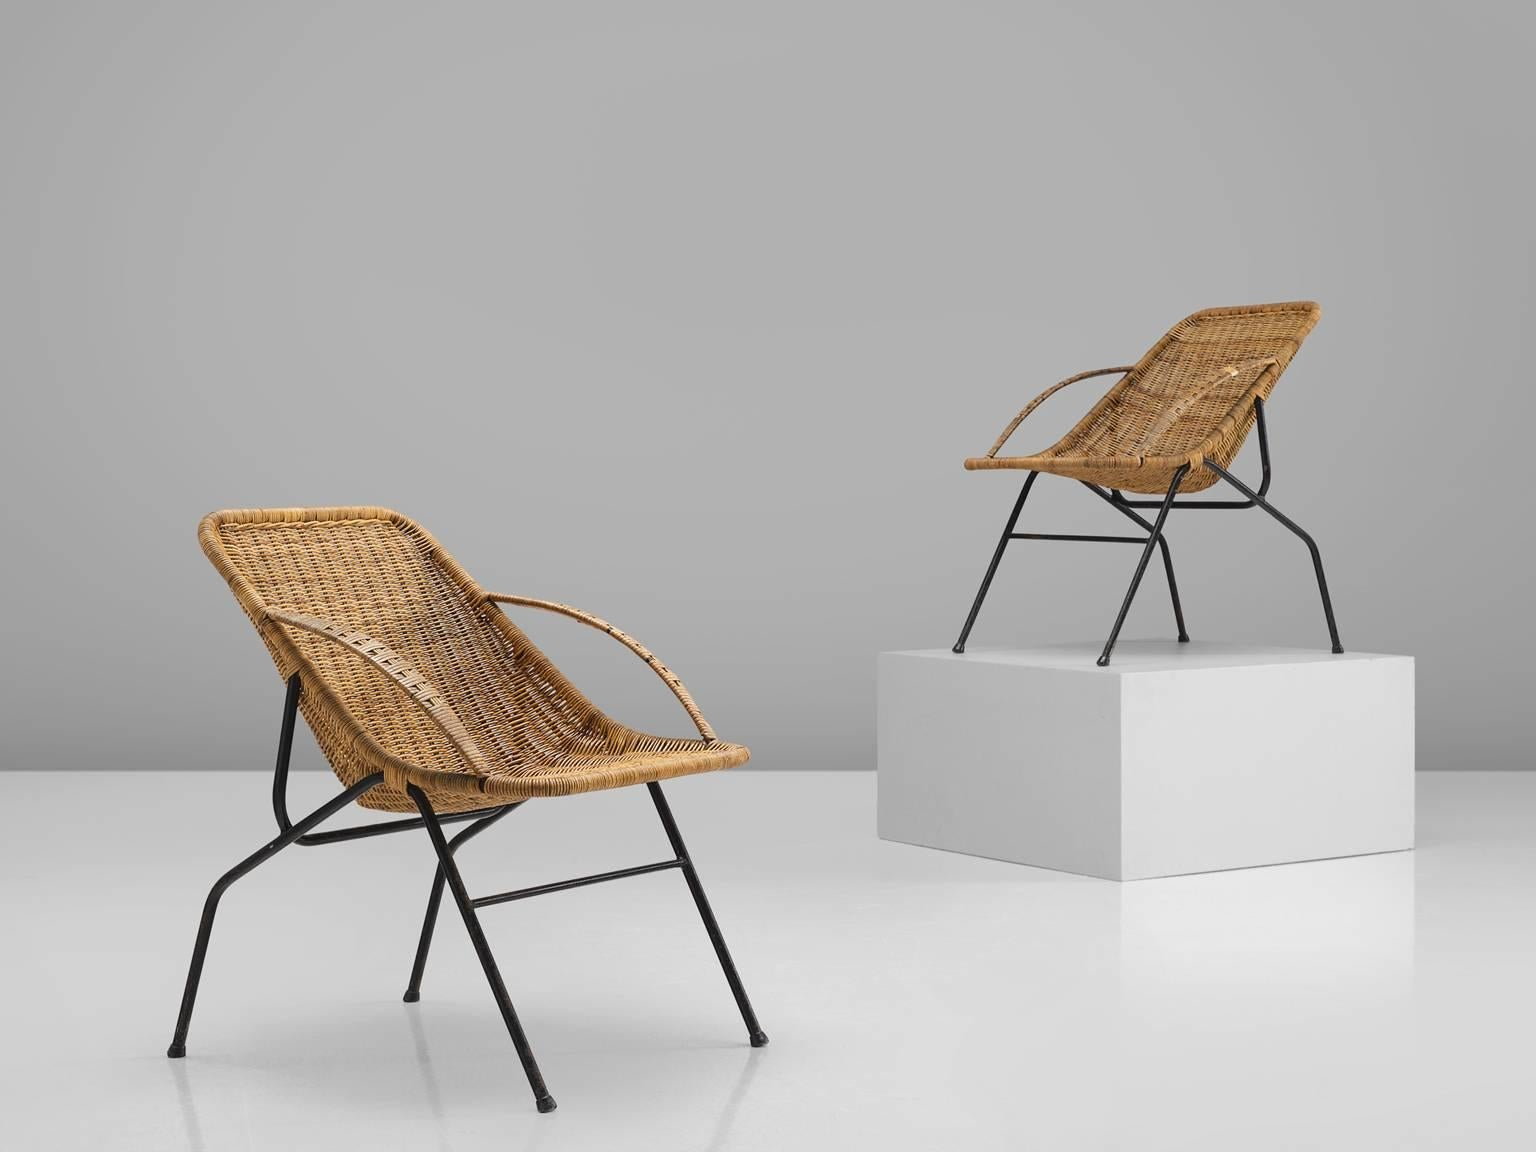 Armchairs, Rattan, Cane And Black Coated Metal, France, 1950s. This Pair